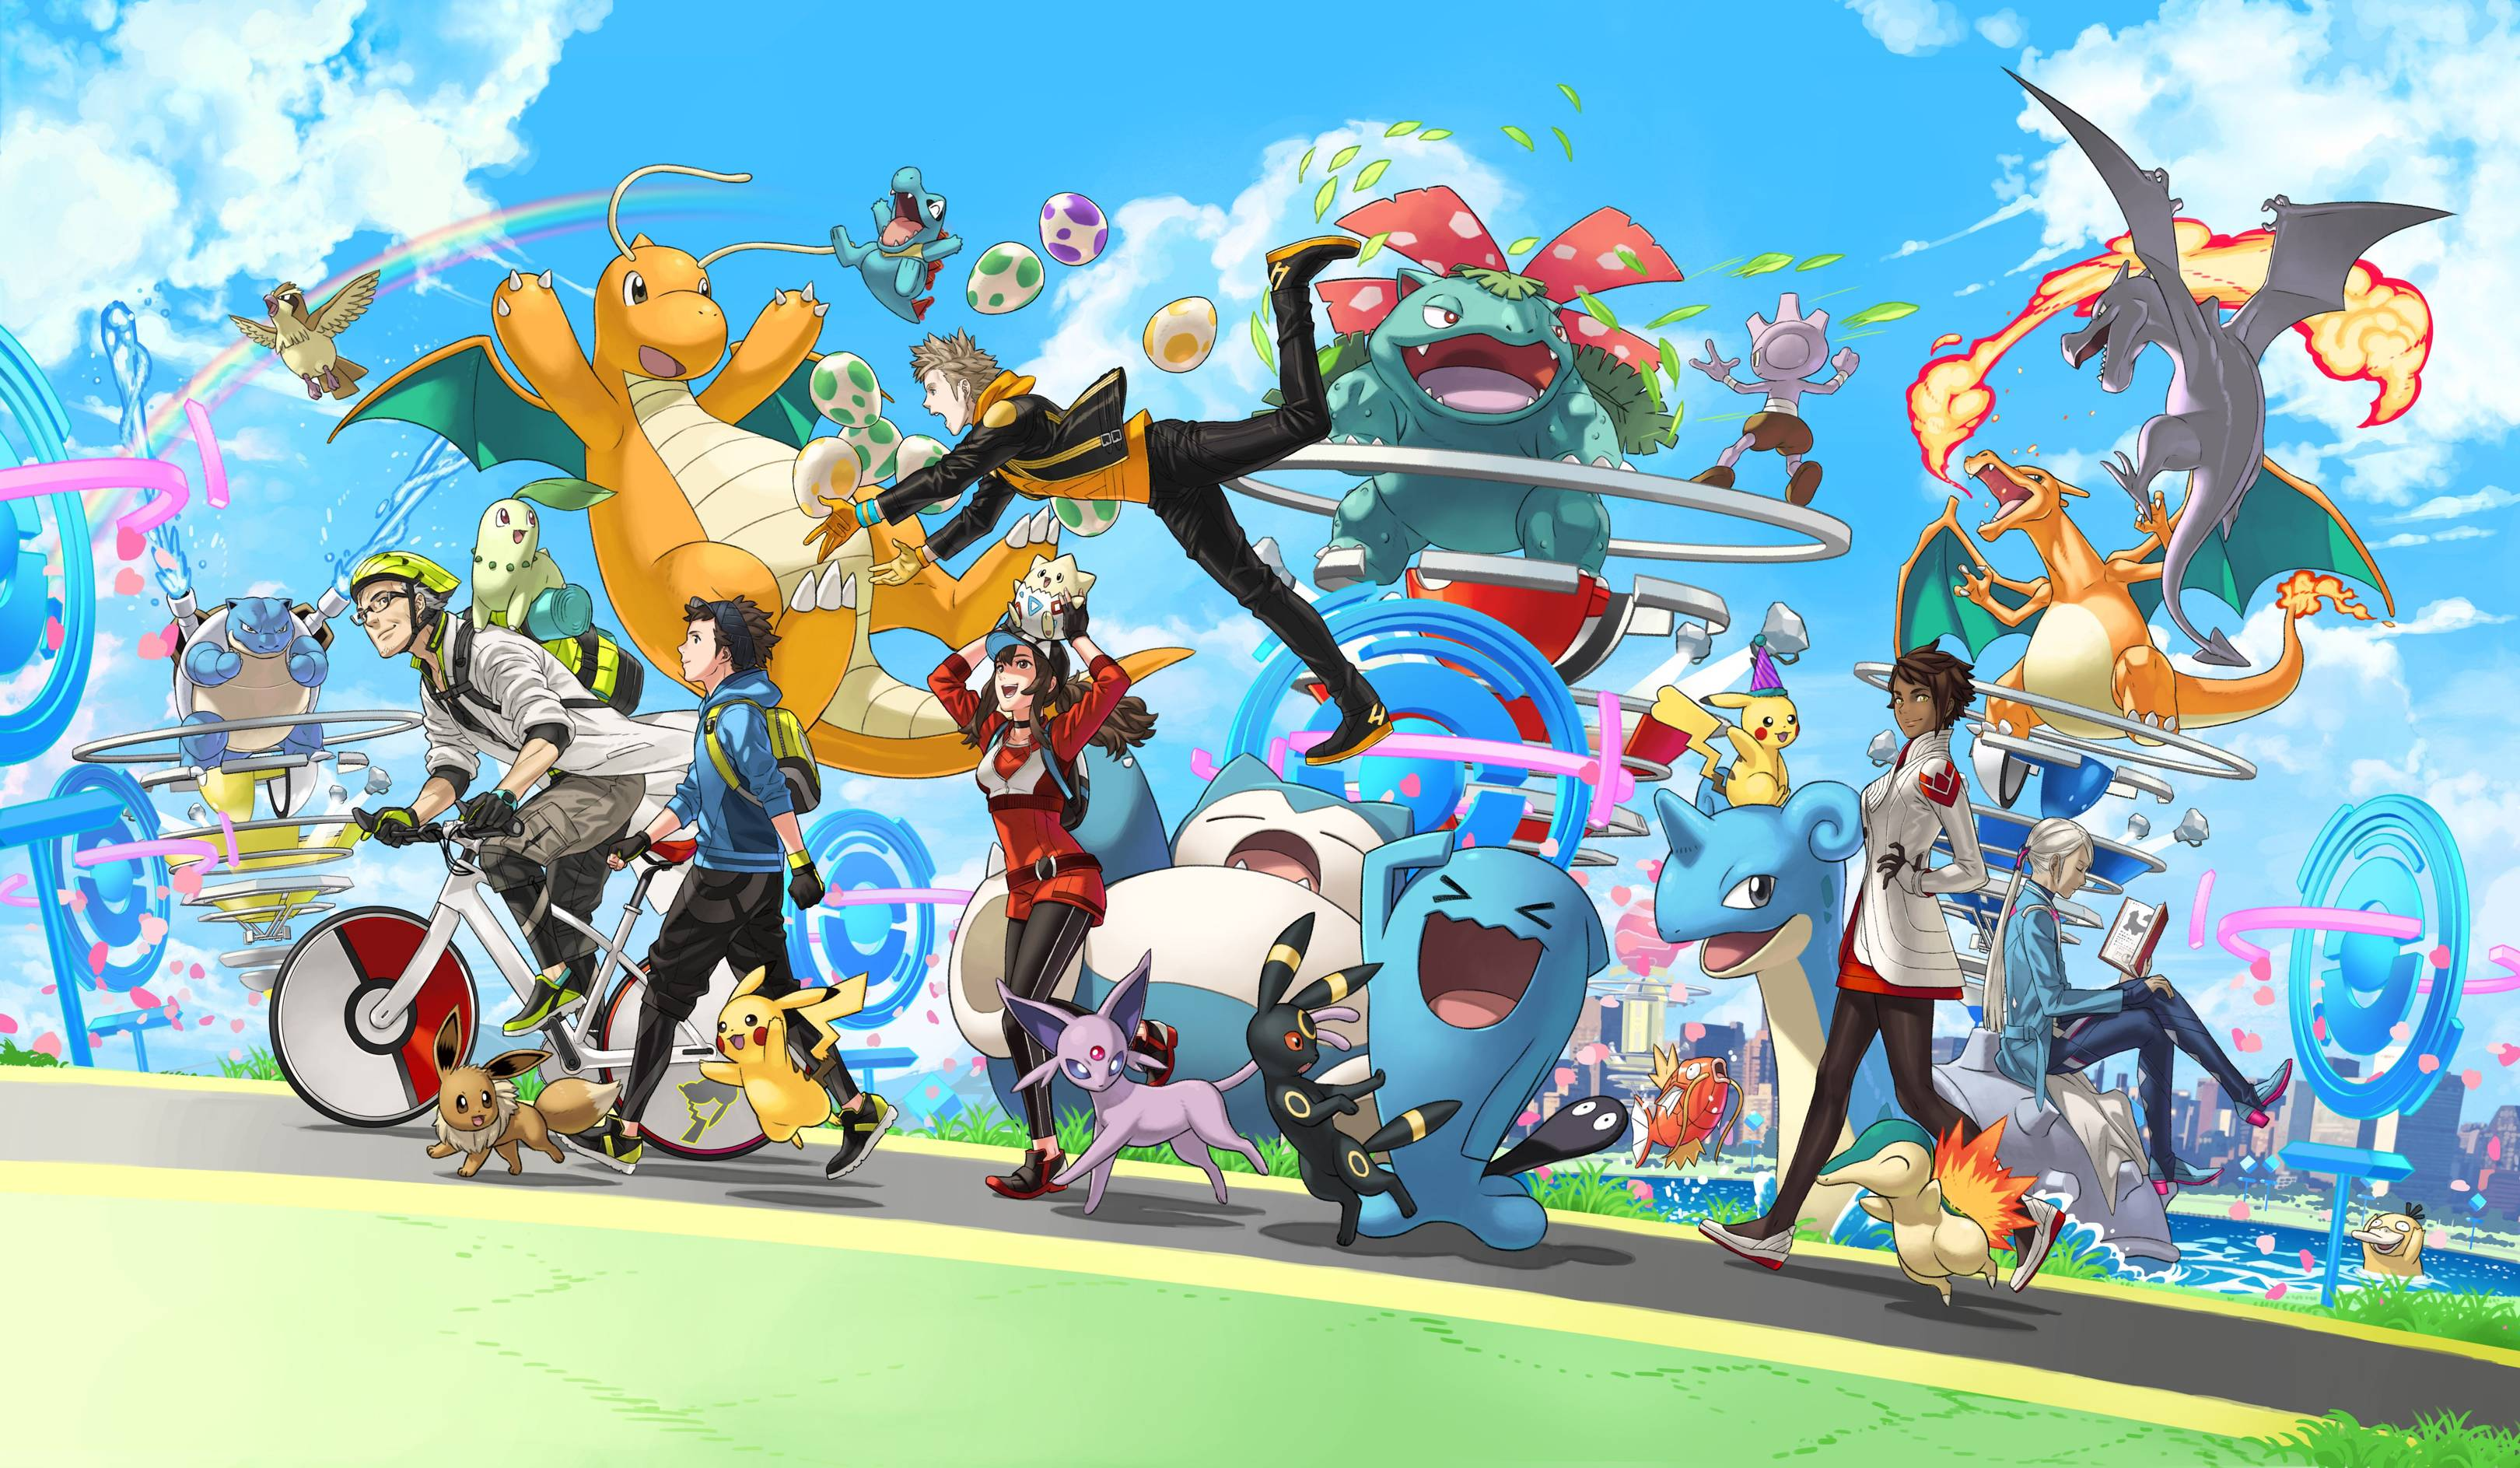 Pokemon Go Brings Lots Of In-Game Events As They Celebrate Their Third Anniversary